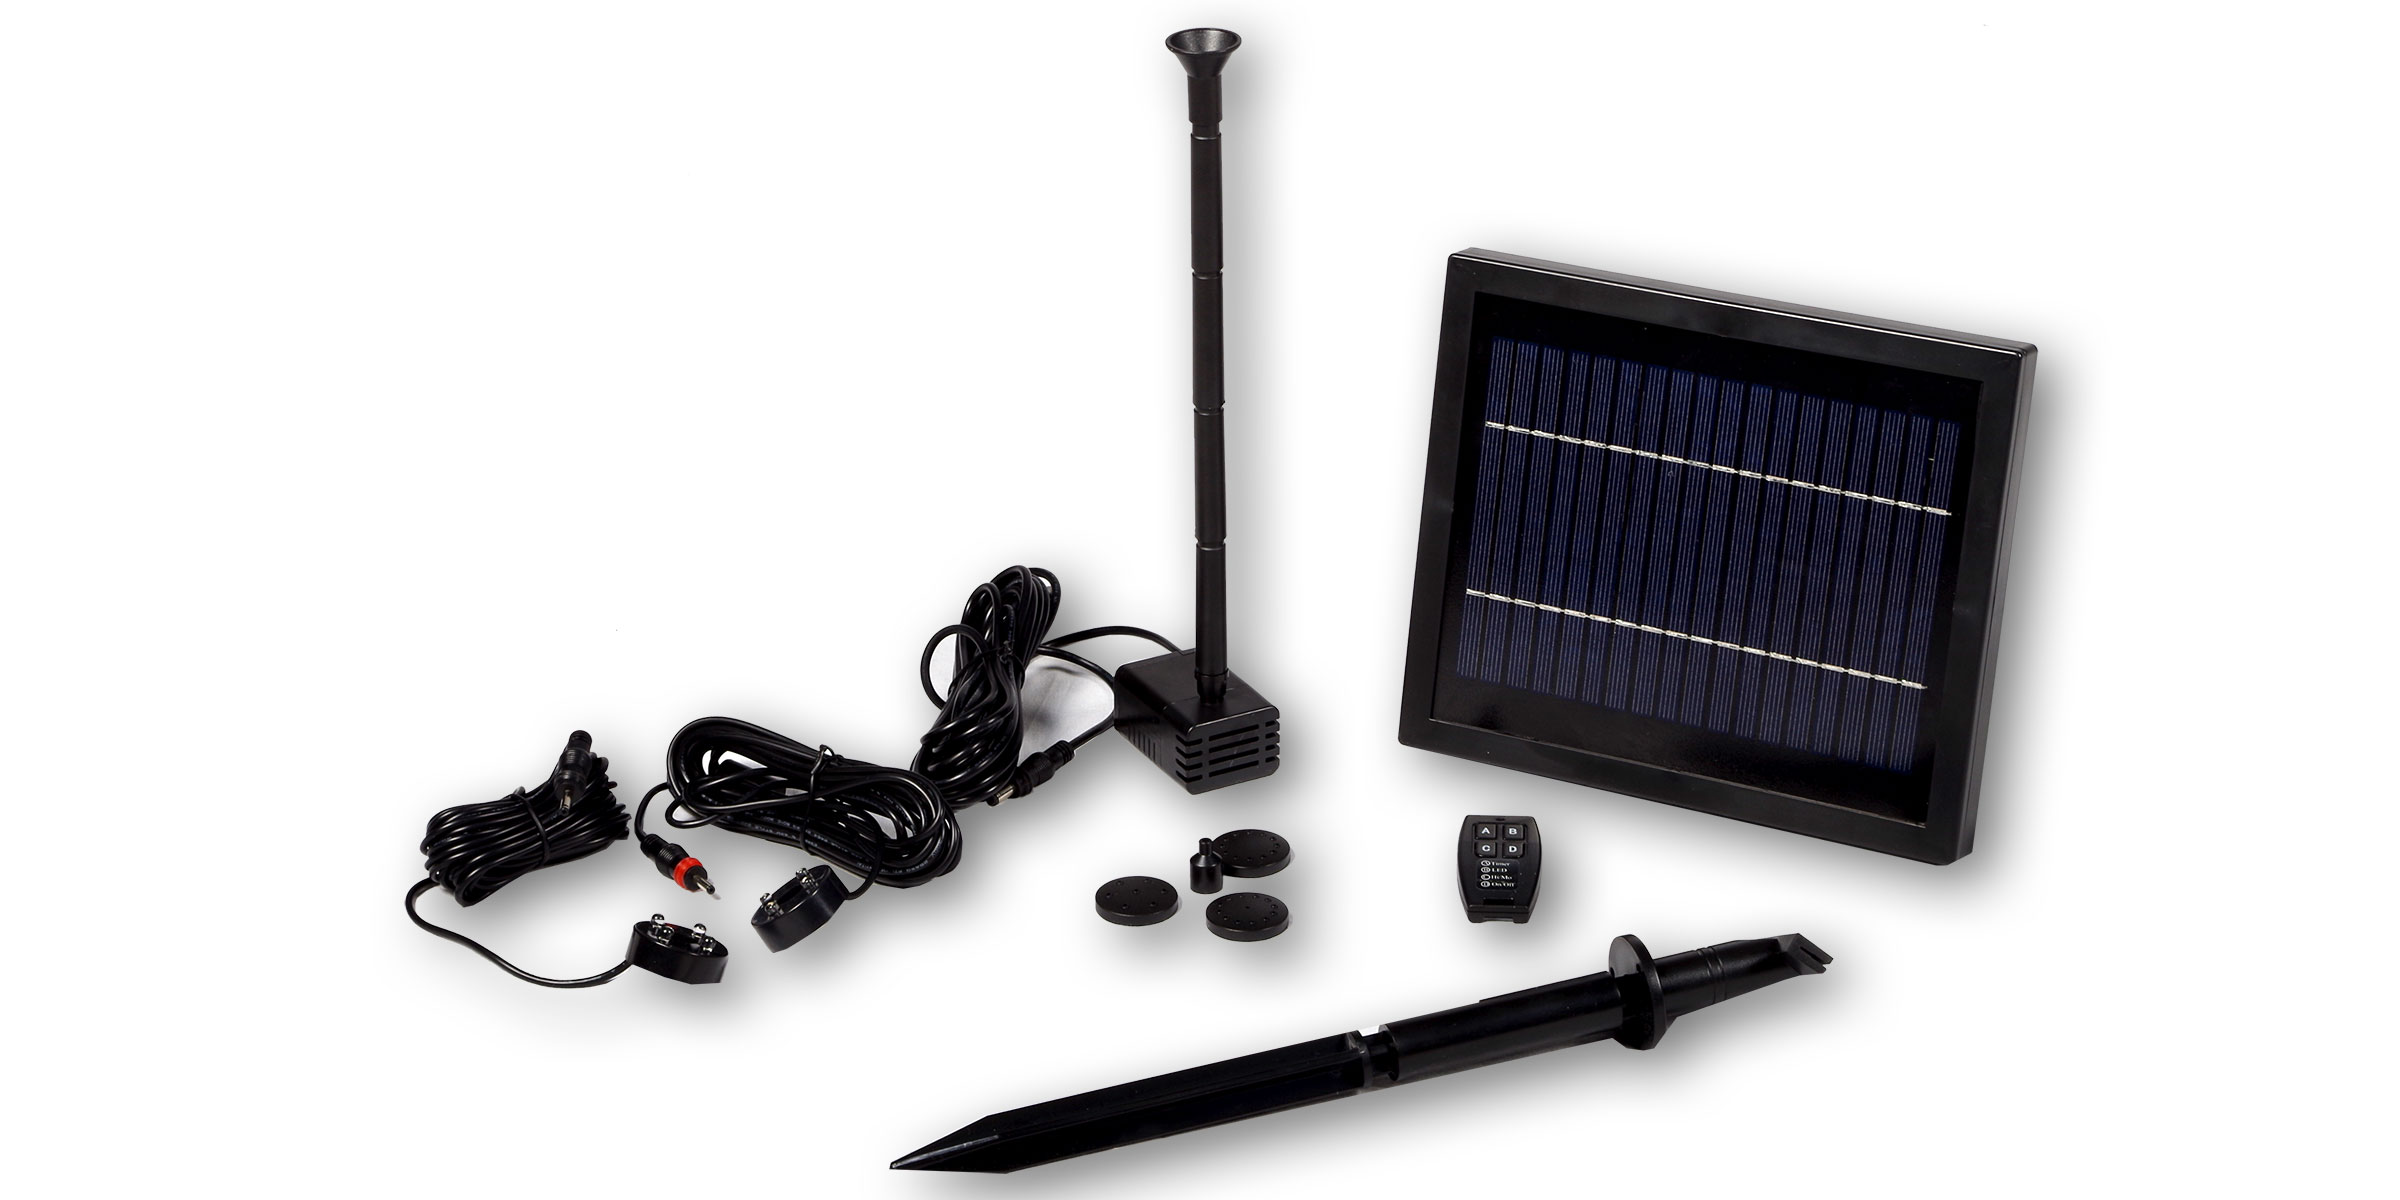 solarpumpe teich clgarden solarpumpe sps with solarpumpe. Black Bedroom Furniture Sets. Home Design Ideas